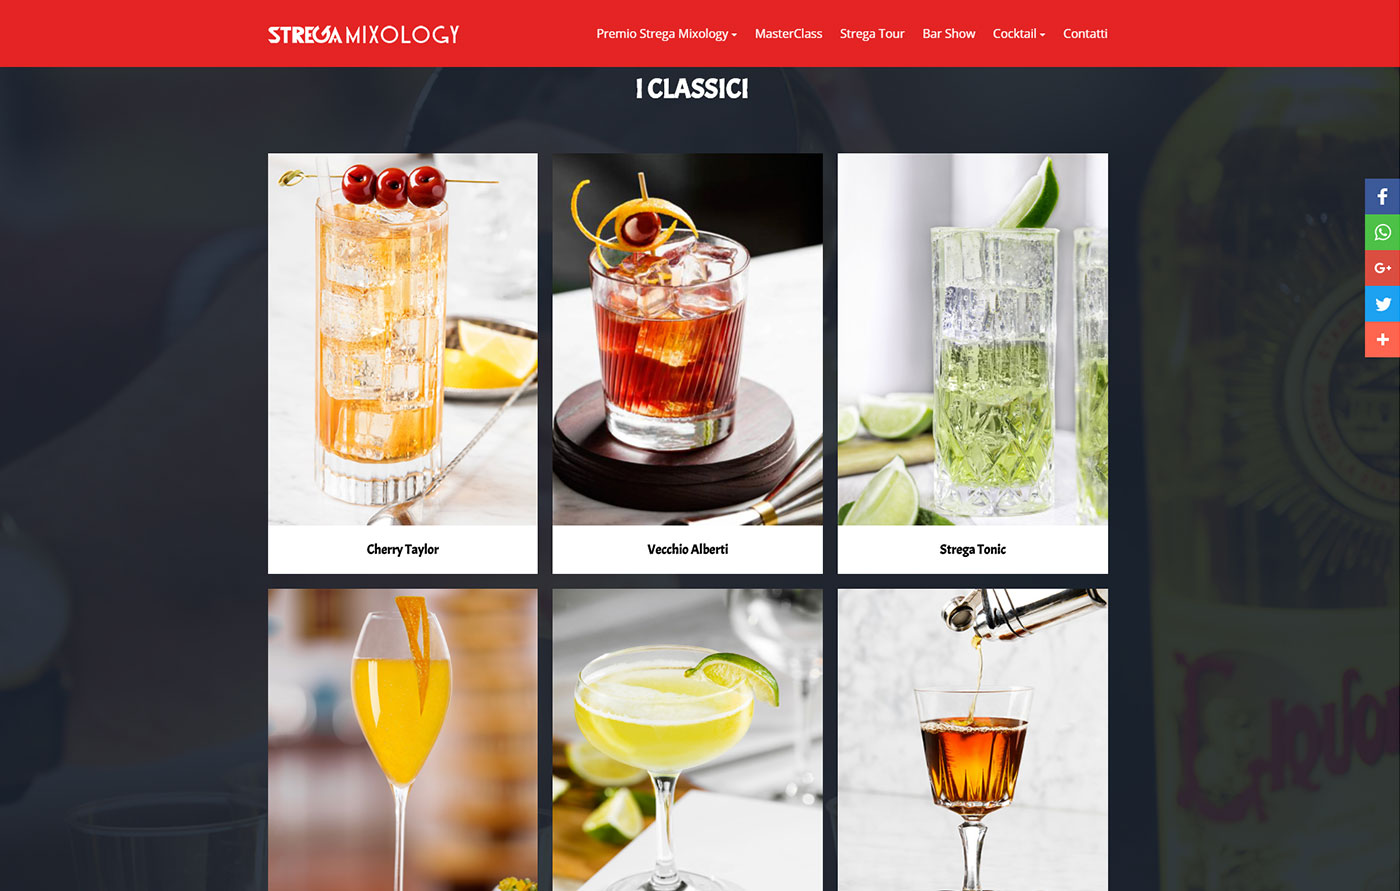 Strega Mixology, brand events online